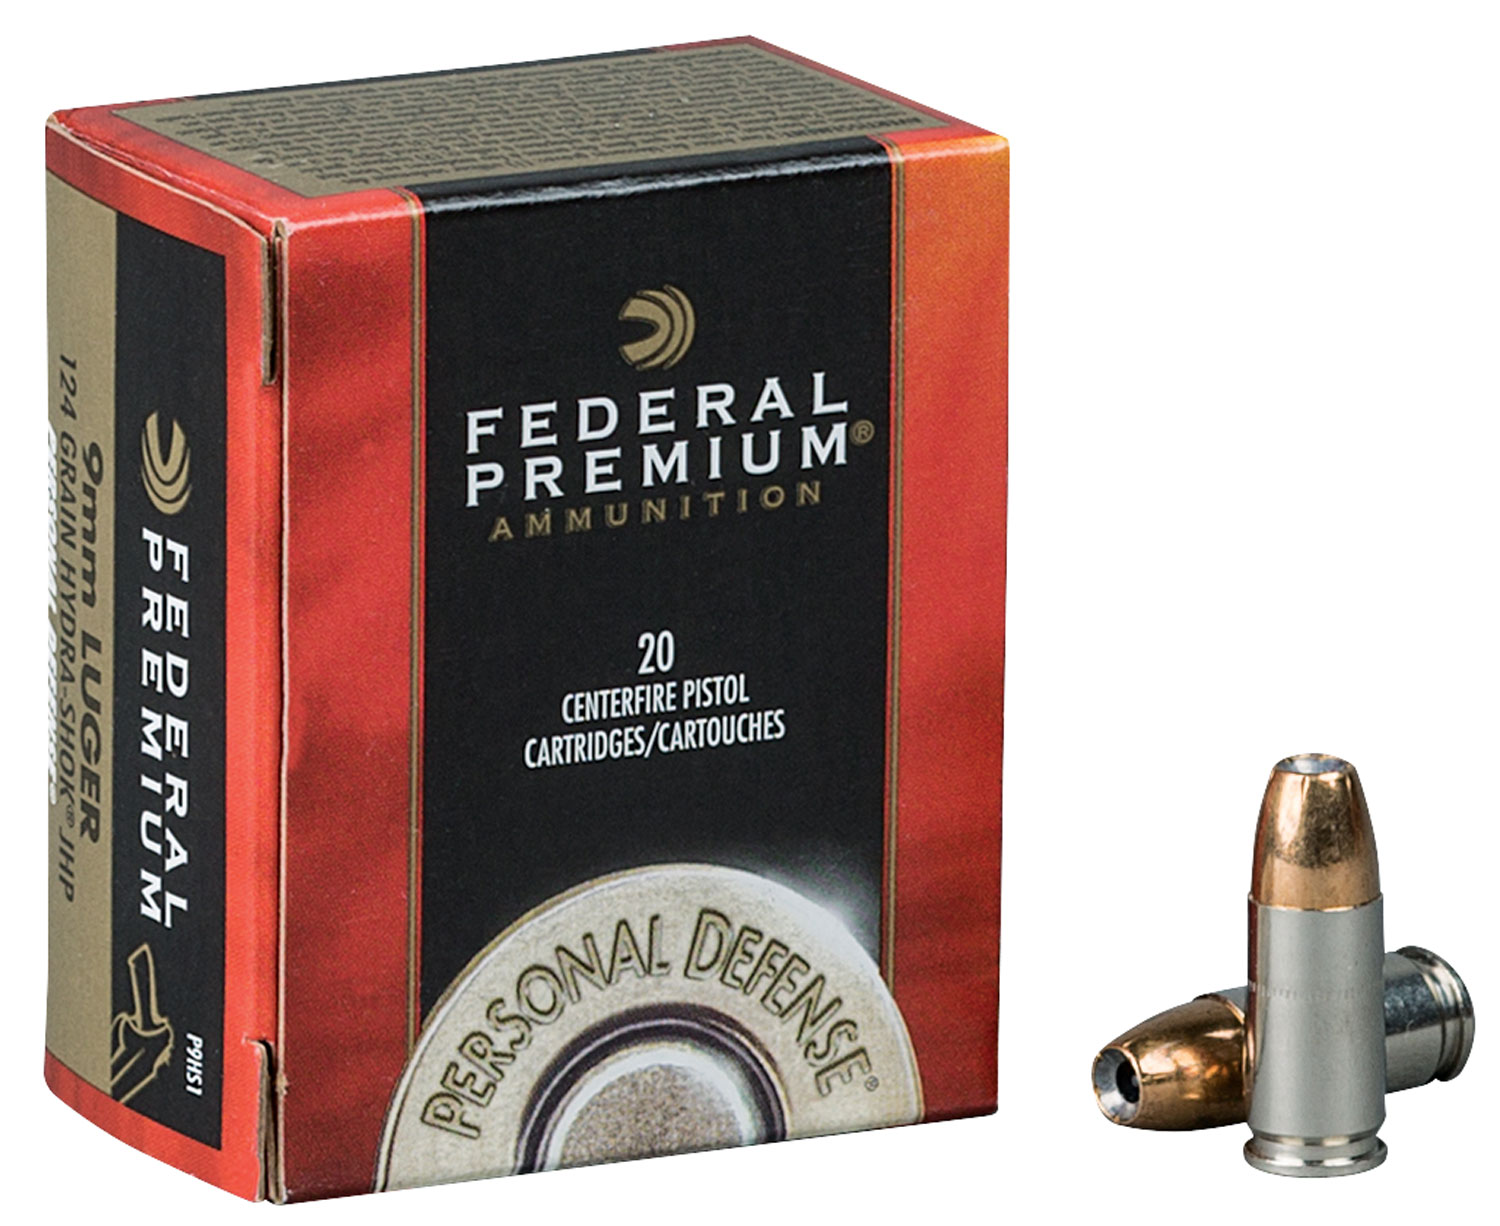 Federal P10HS1 Premium Personal Defense 10mm Auto 180 gr Hydra-Shok Jacketed Hollow Point 20 Bx/ 25 Cs